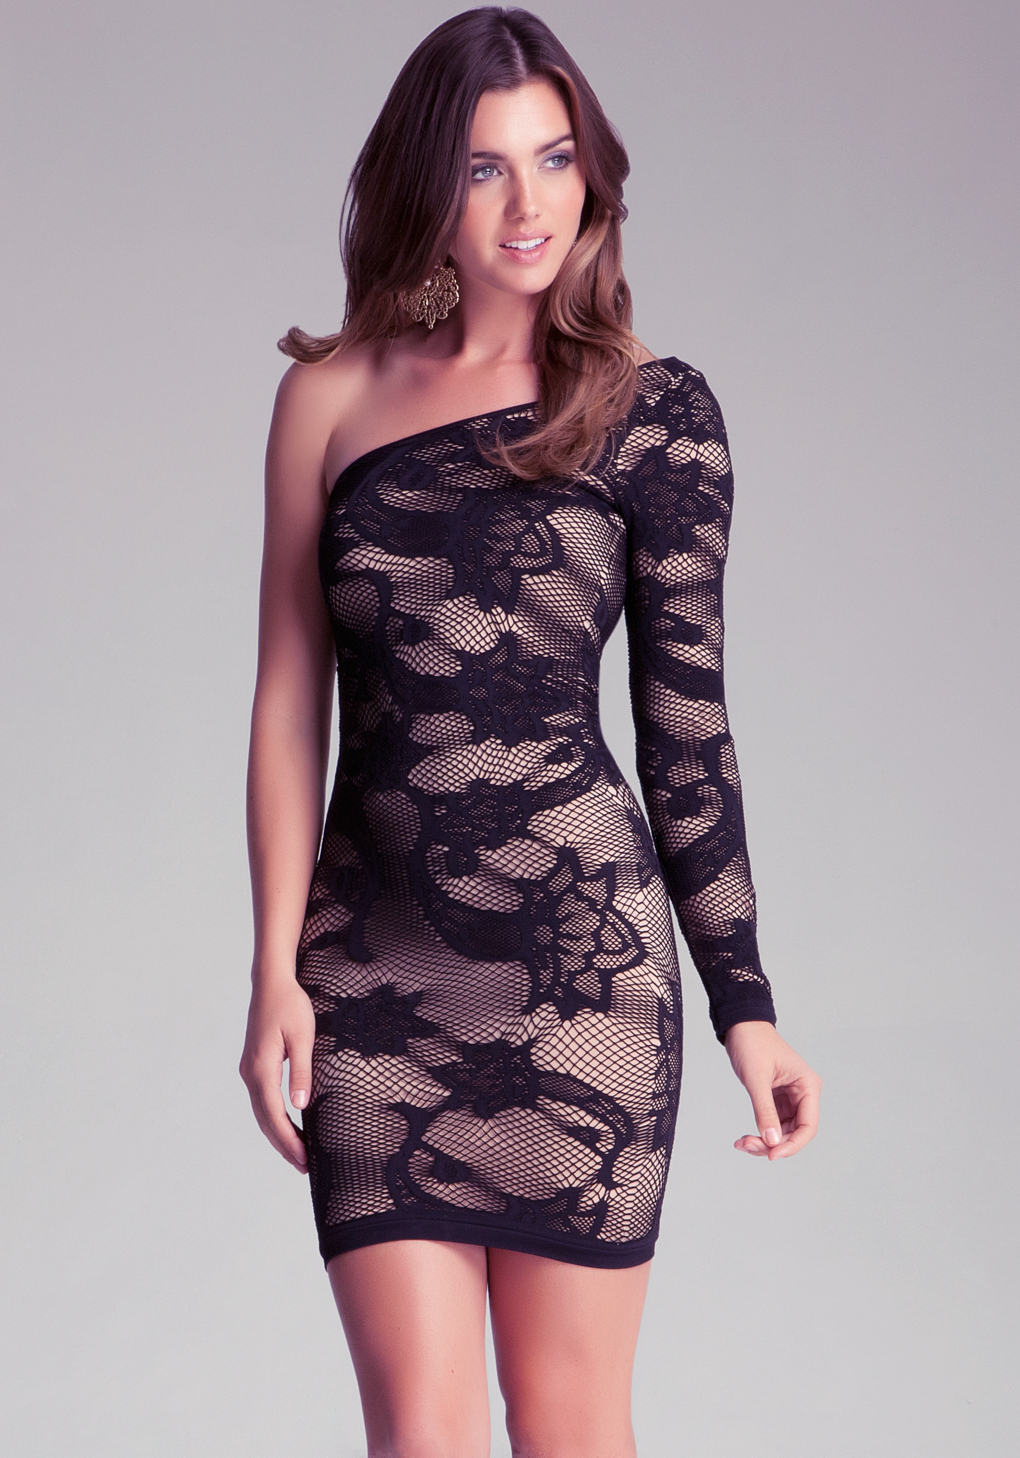 Color: Black % Polyester Imported Pull On closure Dry Clean Only One shoulder Lace dress Customers who viewed this item also bought Calvin Klein Women's One Shoulder Lace Dress. Manufacturer Video. Next page. Customer Questions & Answers See questions and answers. Customer reviews. out of 5 stars. 4. out of 5 stars/5(4).